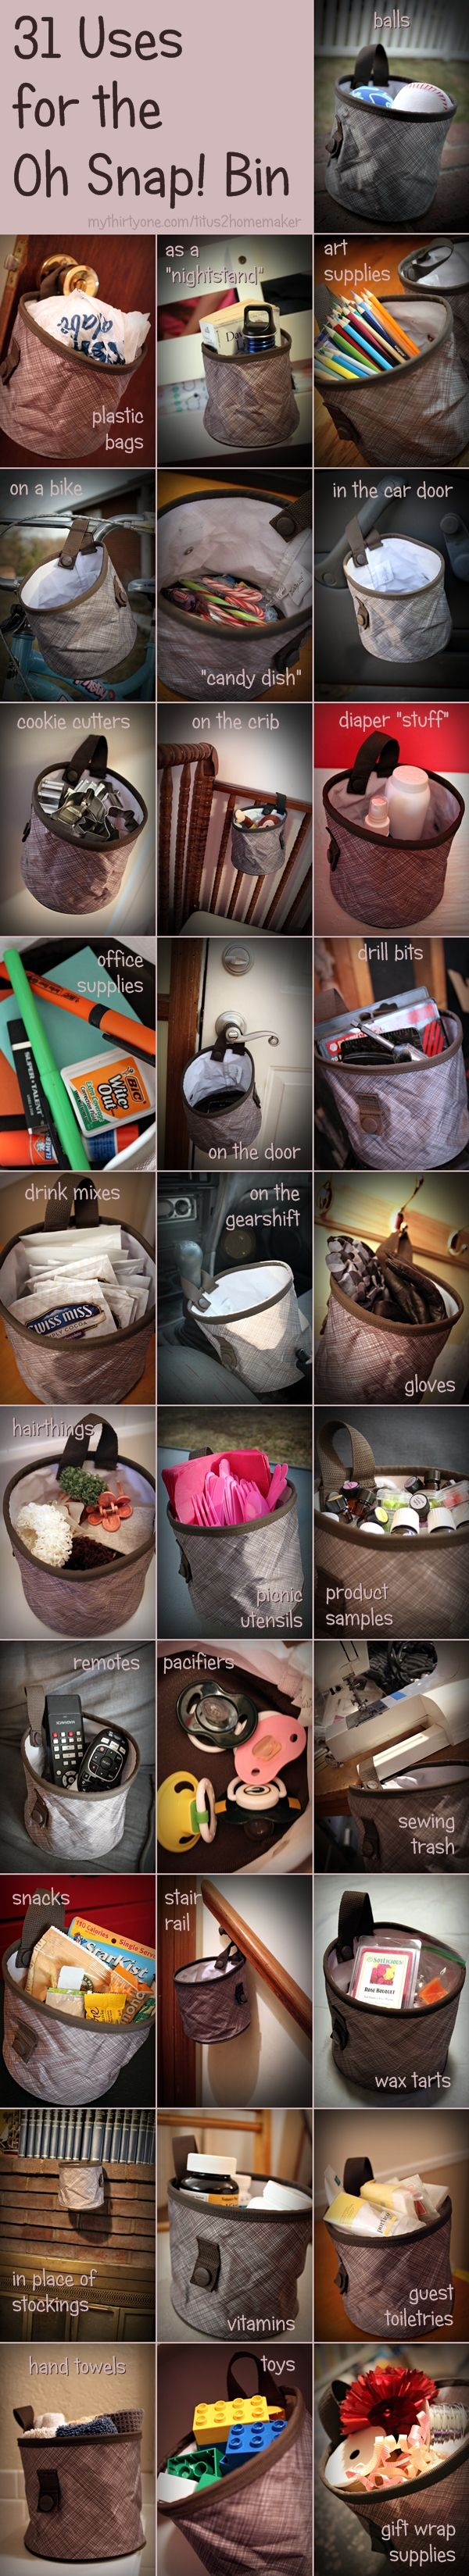 31 Ways to use the Oh Snap! Bin.  These ideas should get you started.